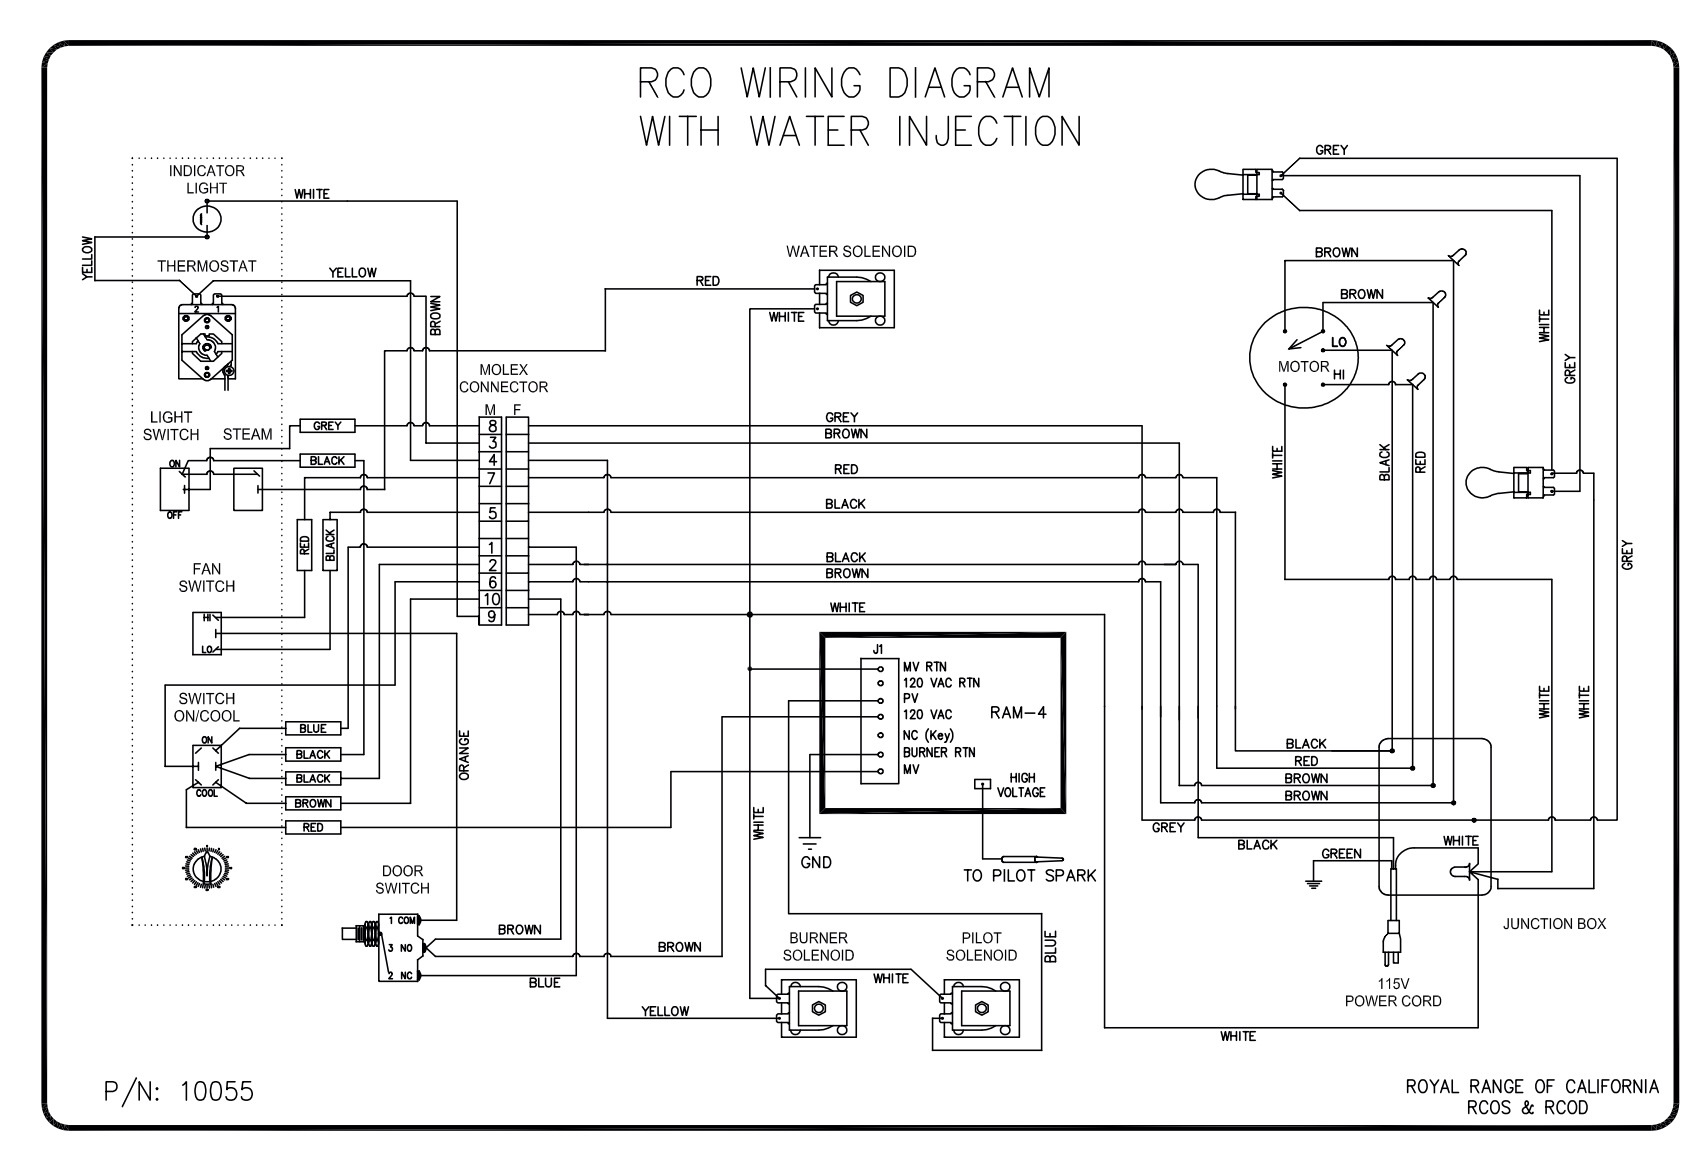 harley davidson harman kardon wiring diagram with Electric Stove Element Wiring Diagram on Motorcycle Control Diagram additionally Harman Kardon Harley Davidson Radio Wiring Diagram likewise Wiring Diagram For Harley Davidson Radio as well Electric Stove Element Wiring Diagram likewise